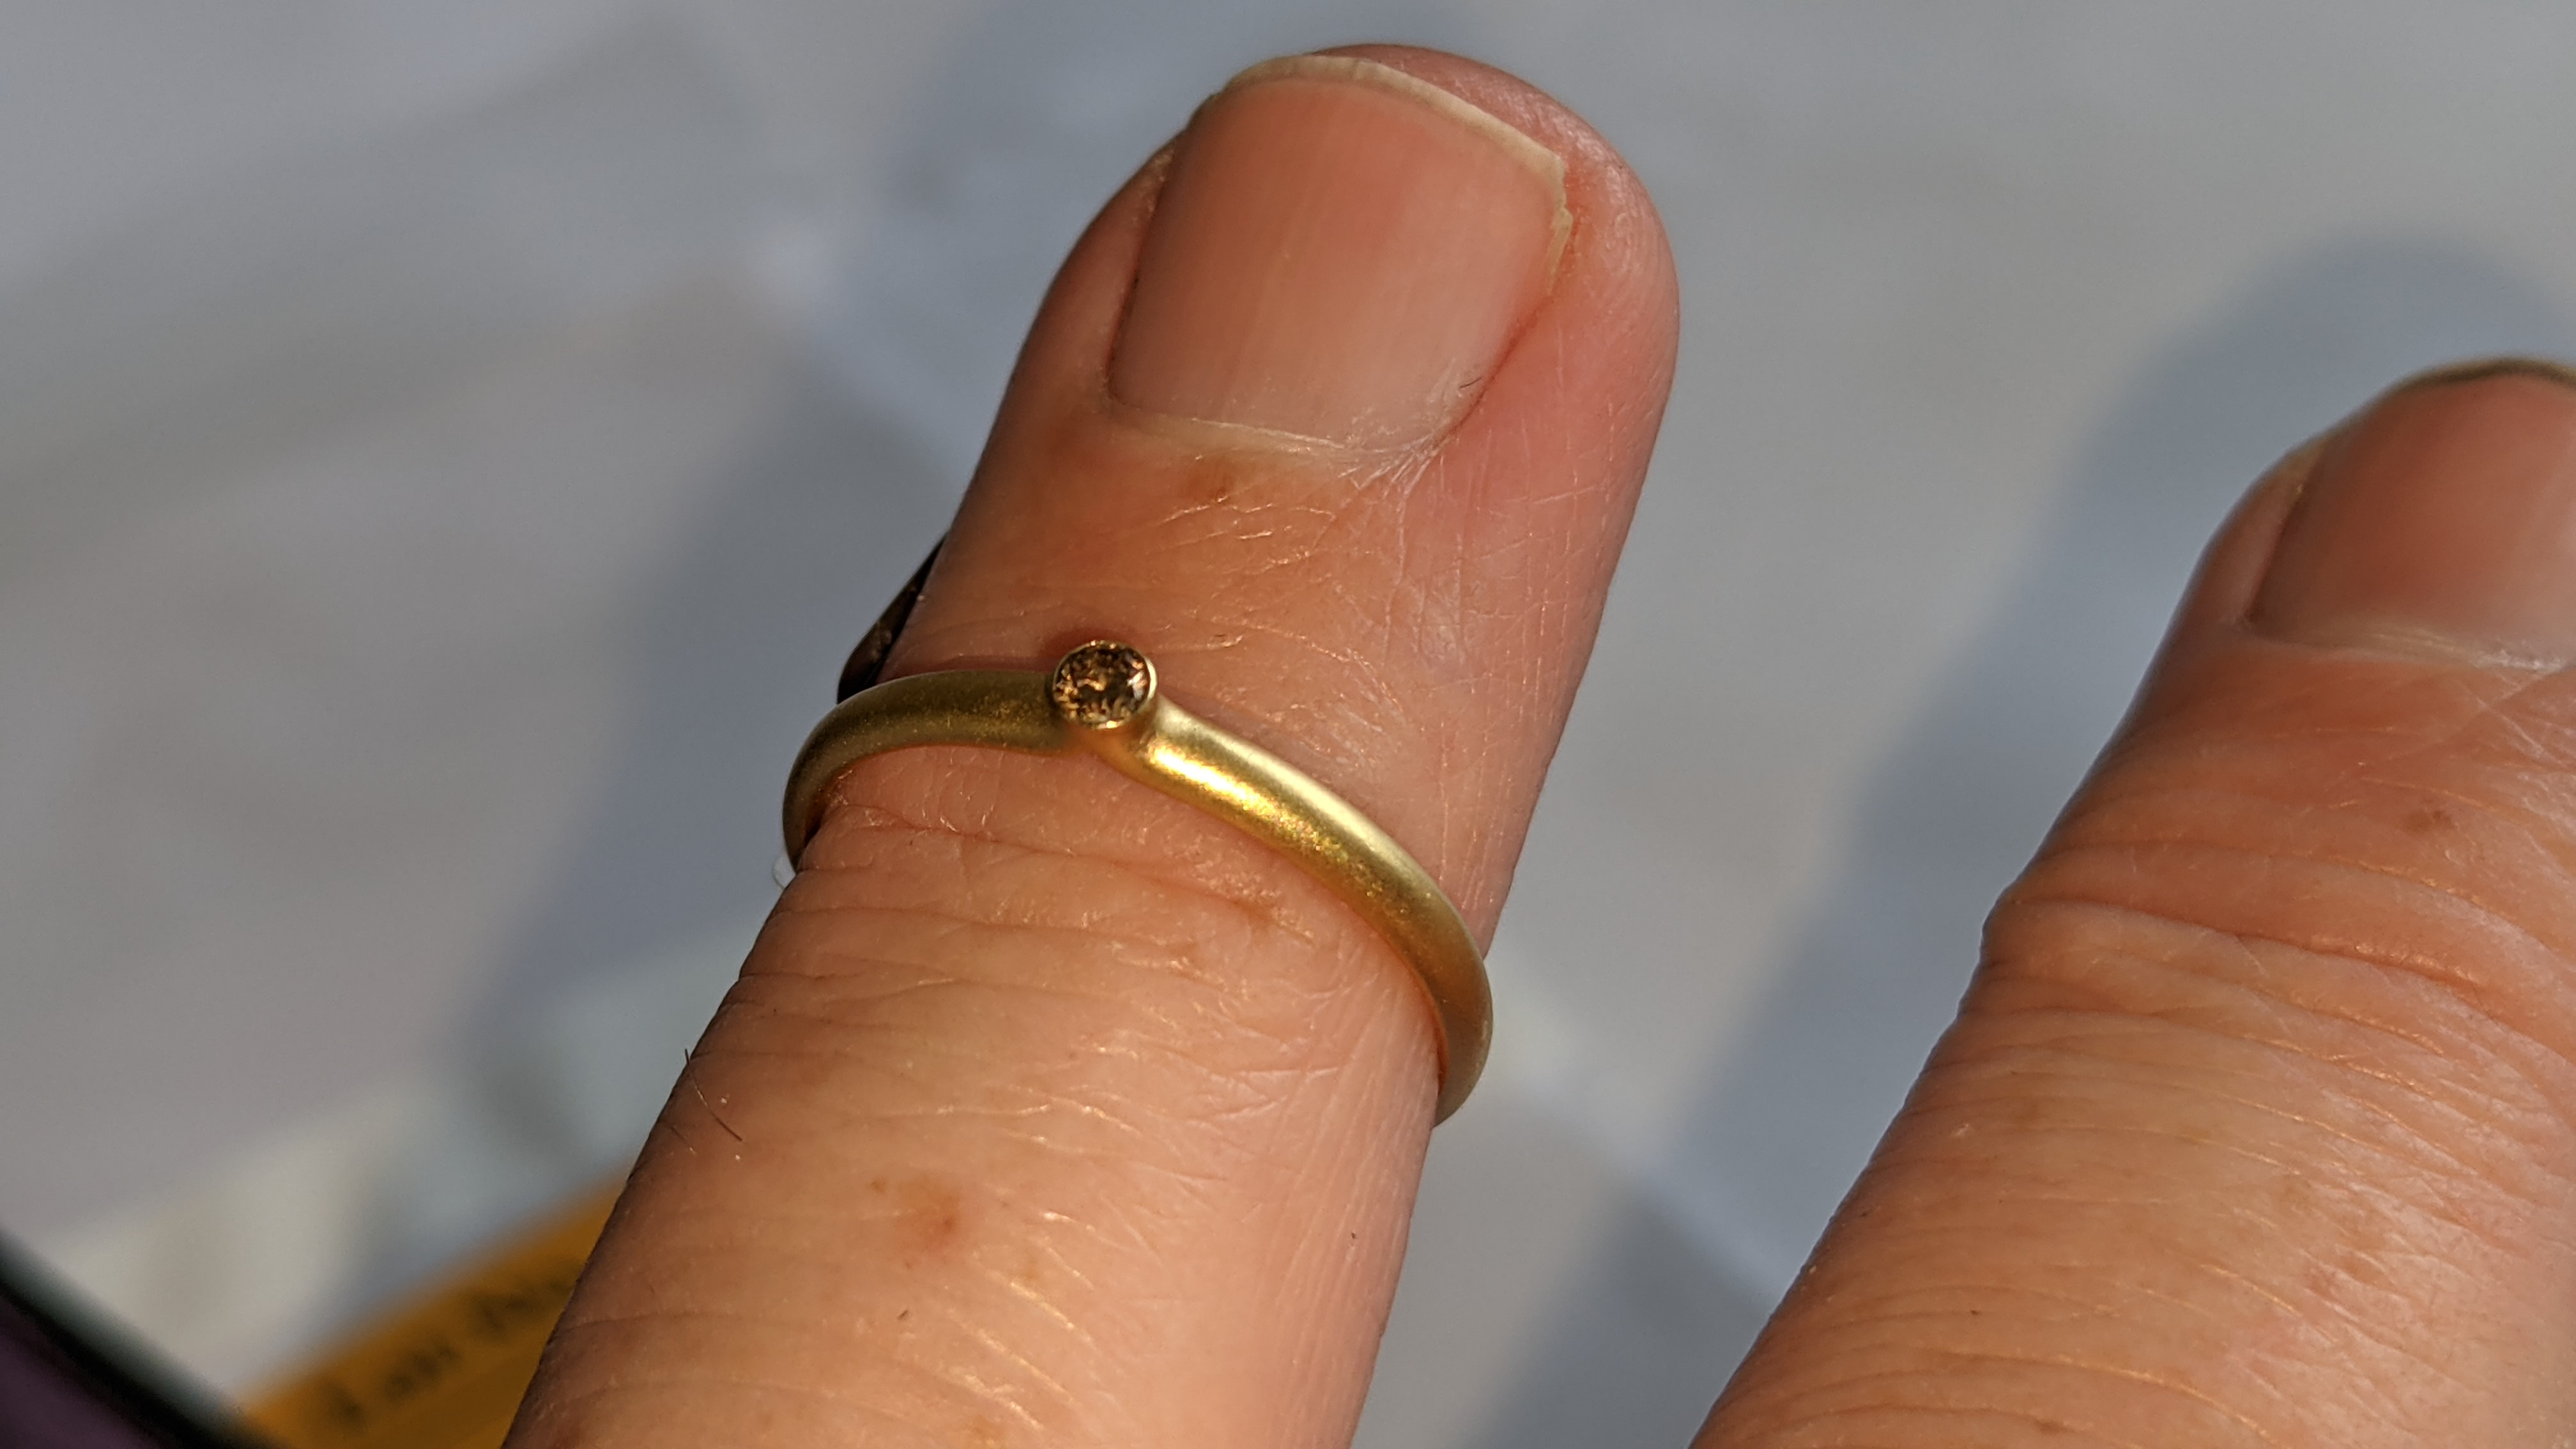 18ct yellow gold & champagne diamond ring RRP £695 - Image 10 of 14